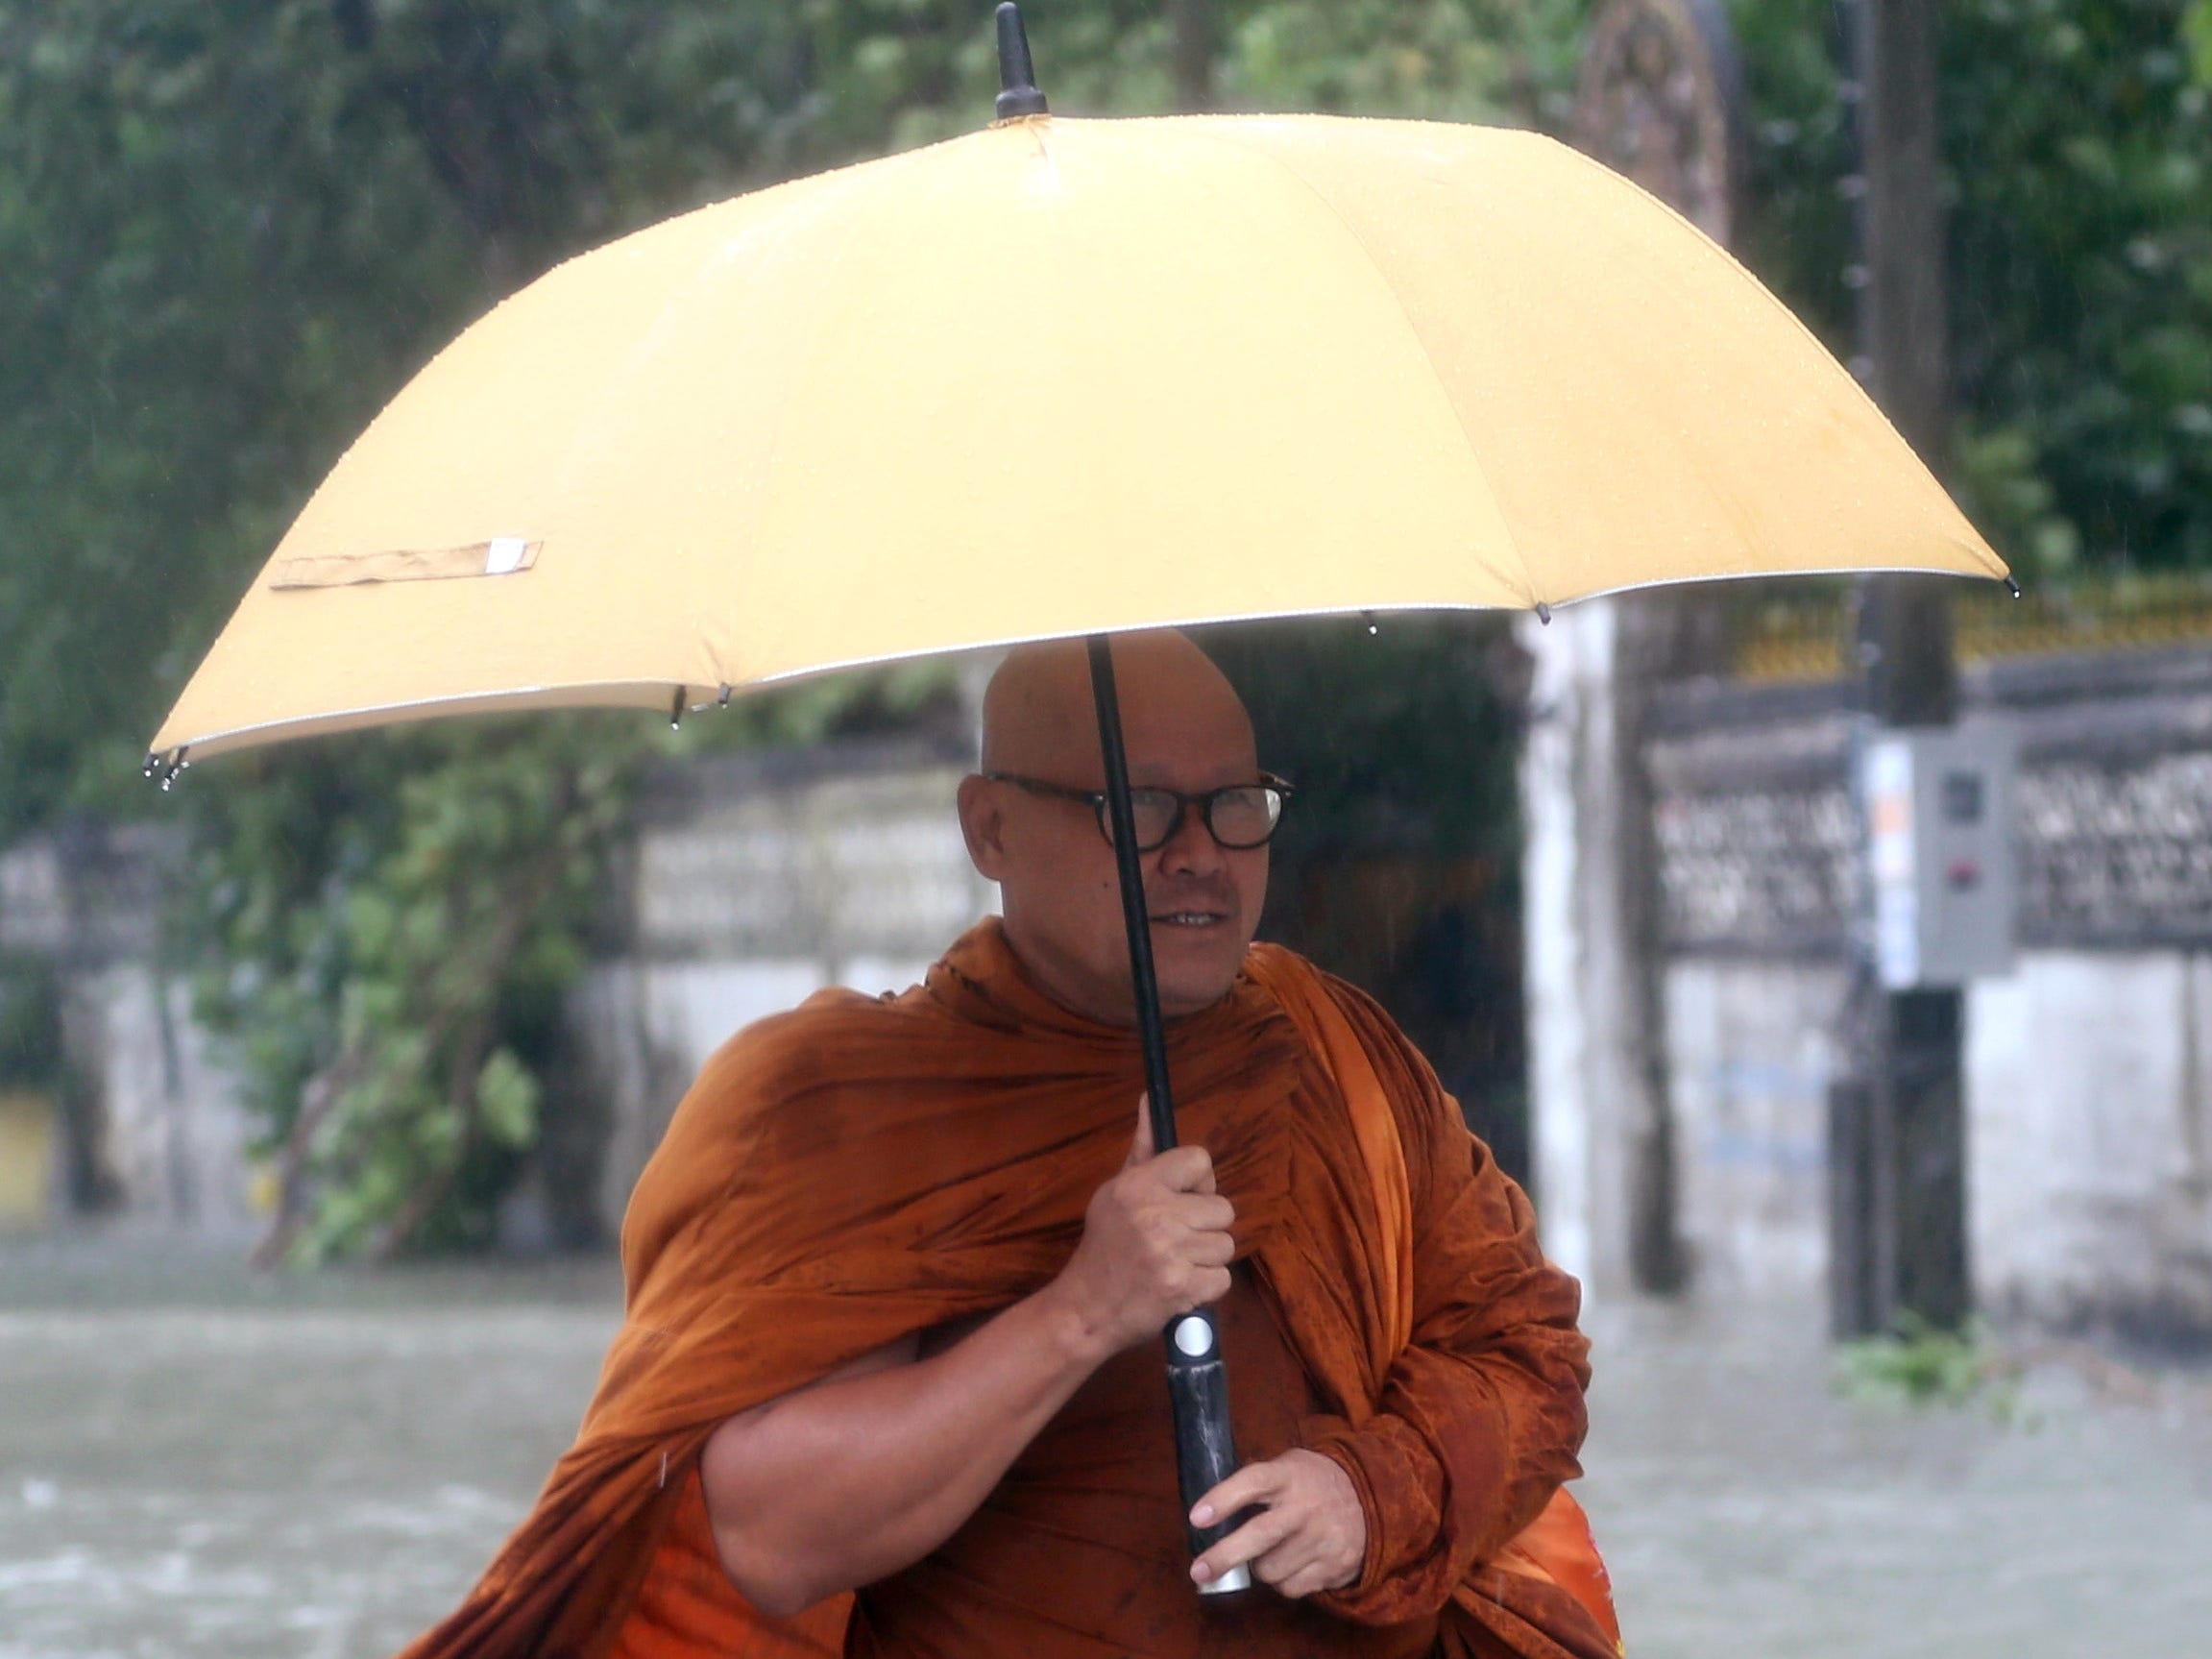 epa07261519 A Thai Buddhist monk wades through a flooded street caused by tropical storm Pabuk at Pak Phanang district, Nakhon Si Thammarat province, southern Thailand, 04 January 2019. Thousands of people evacuated from their homes after 11 southern coast provinces have been put on a weather warning as tropical storm Pabuk brought heavy downpours, strong winds and high waves. Pabuk is the first tropical storm to hit the country outside of the monsoon season in nearly 30 years, media reported.  EPA-EFE/STRINGER THAILAND OUT ORG XMIT: RUN07